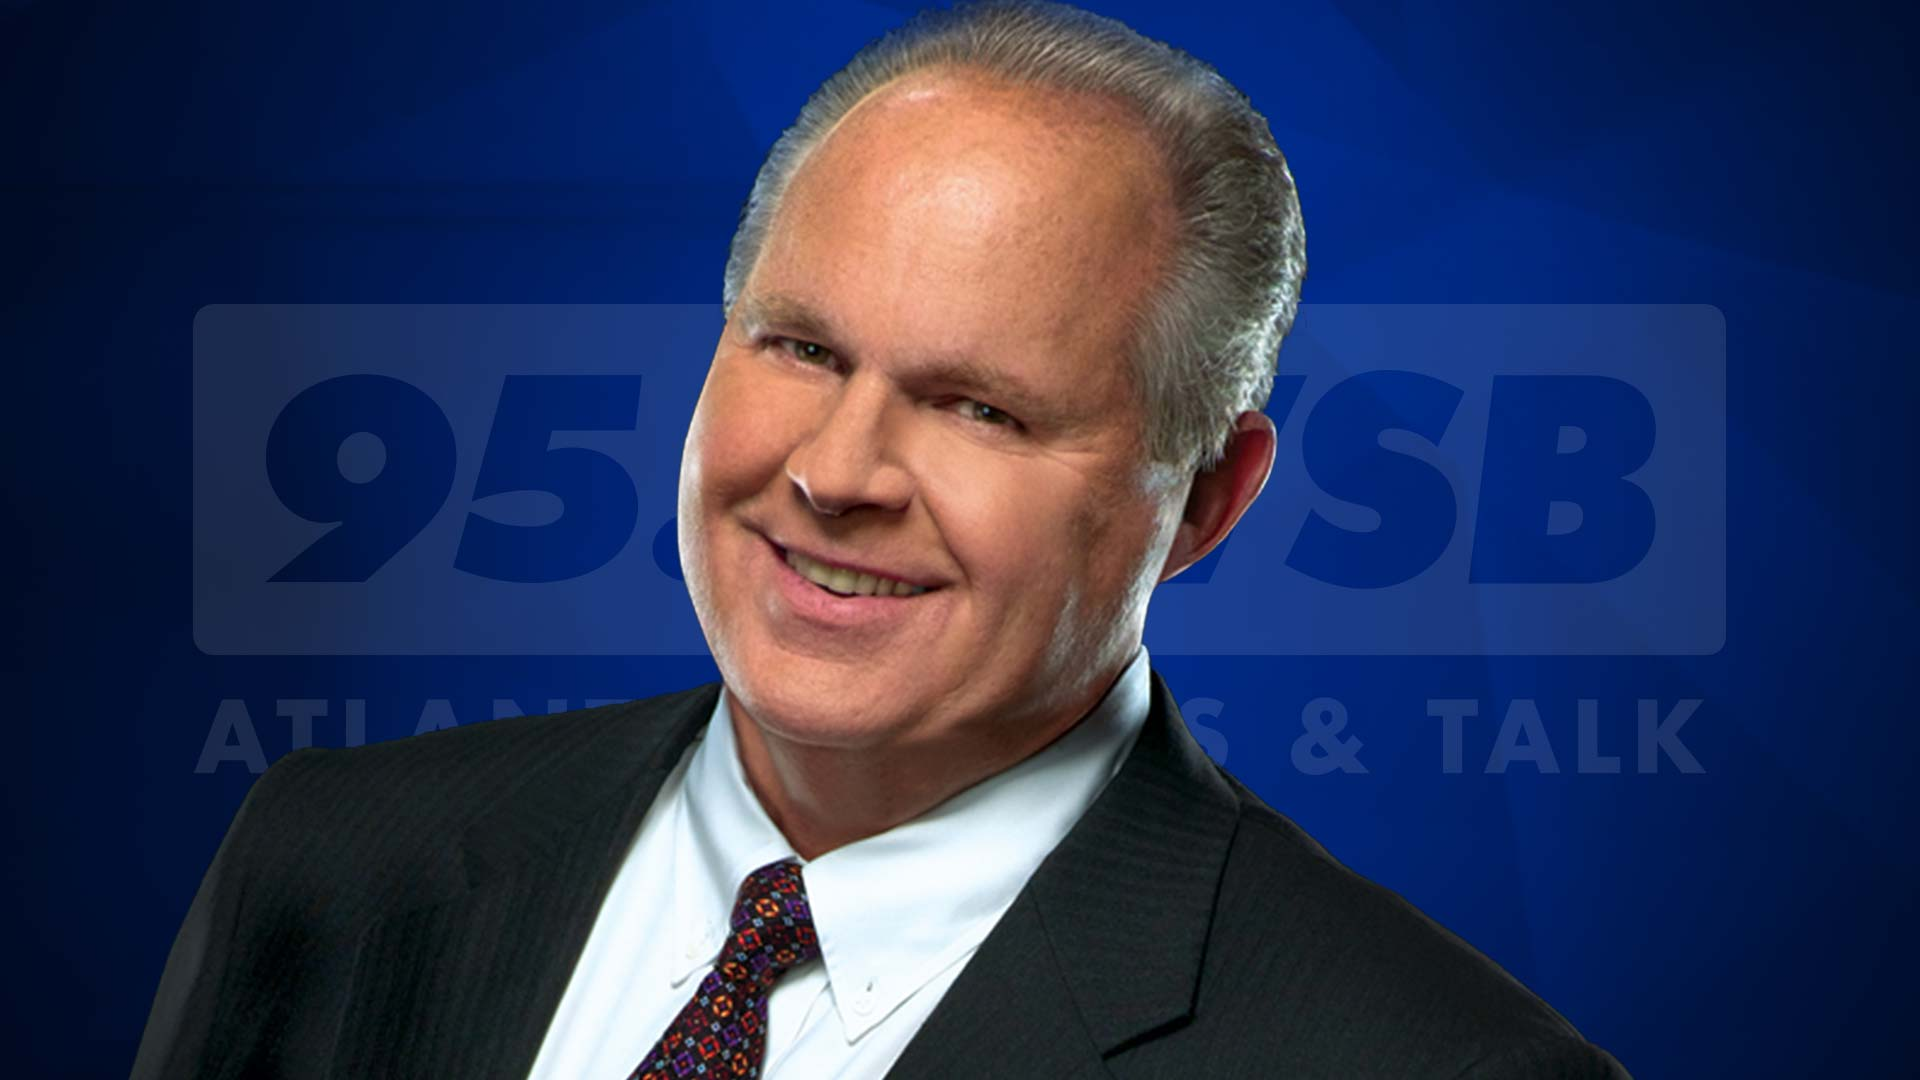 Whoa...Rush Limbaugh Drops Bombshell Announcement